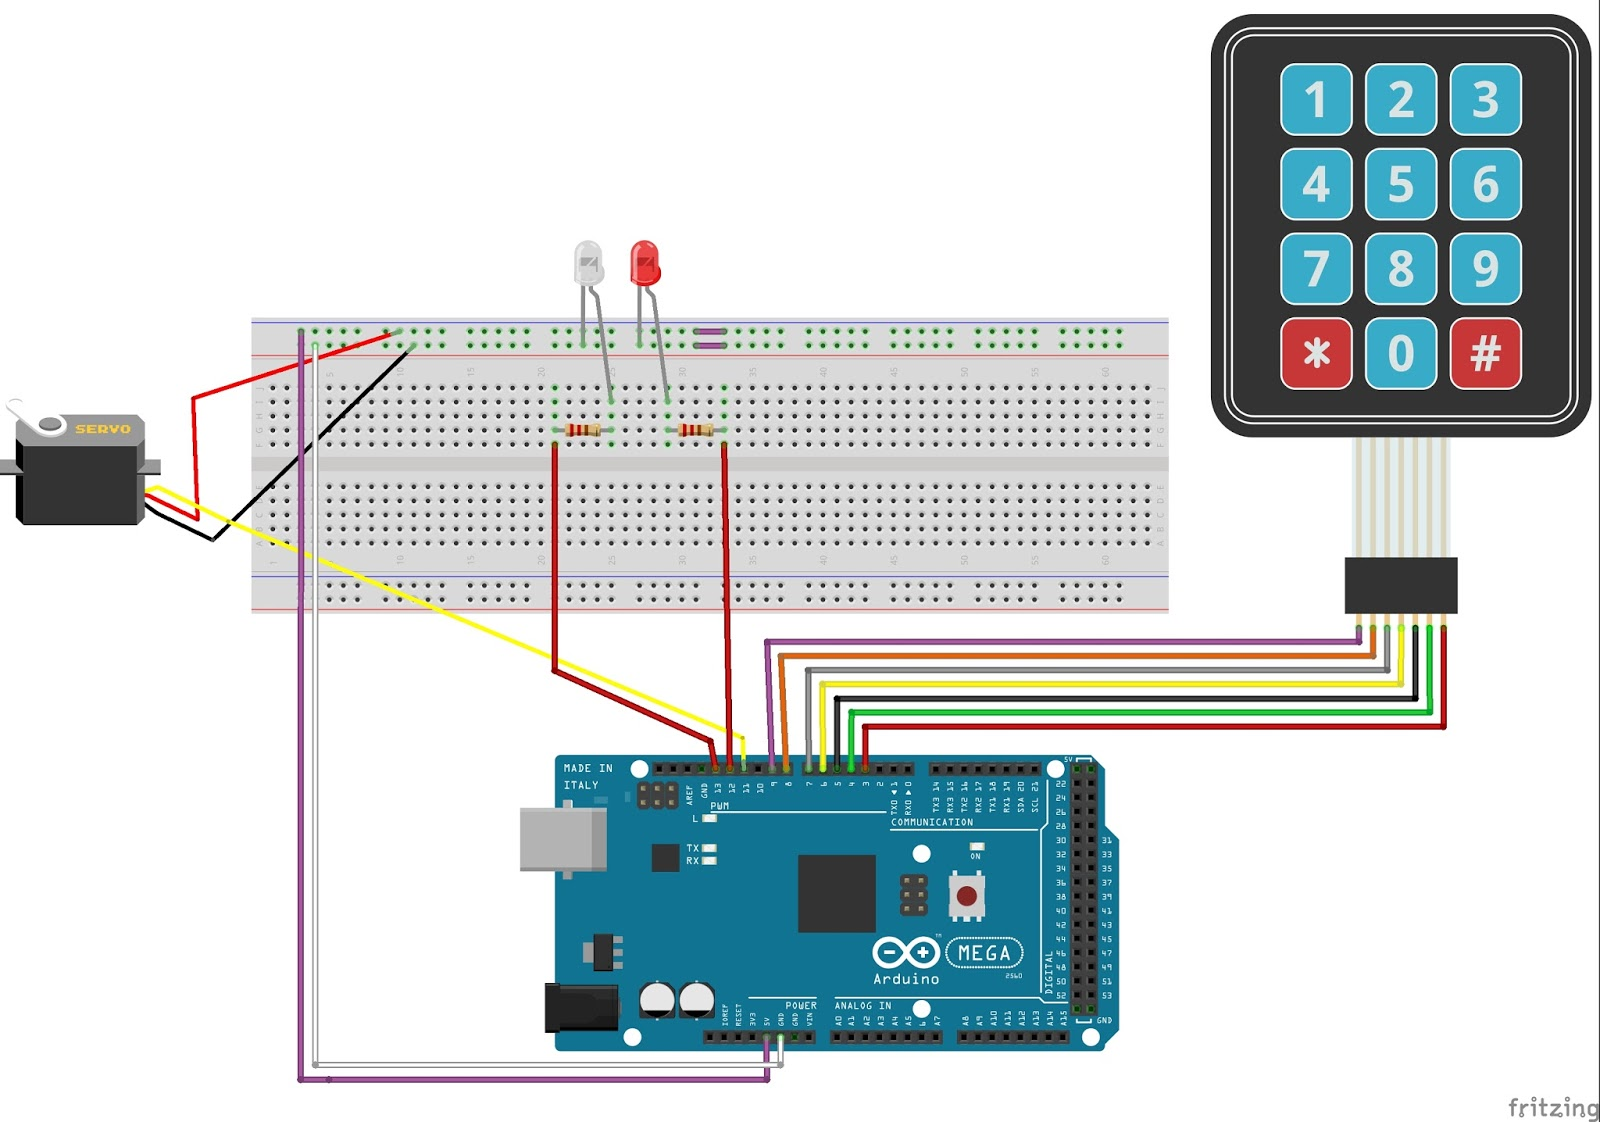 pir with mag lock wiring diagram with Wiring A 4x4 Keypad on Mag Door Wiring Diagram in addition Lock ics Maglock Wiring Diagram besides Radiation Detector Circuit Diagram further 12 Vdc Motion Sensor likewise Electroswitch Lockout Relay Wiring Diagram.